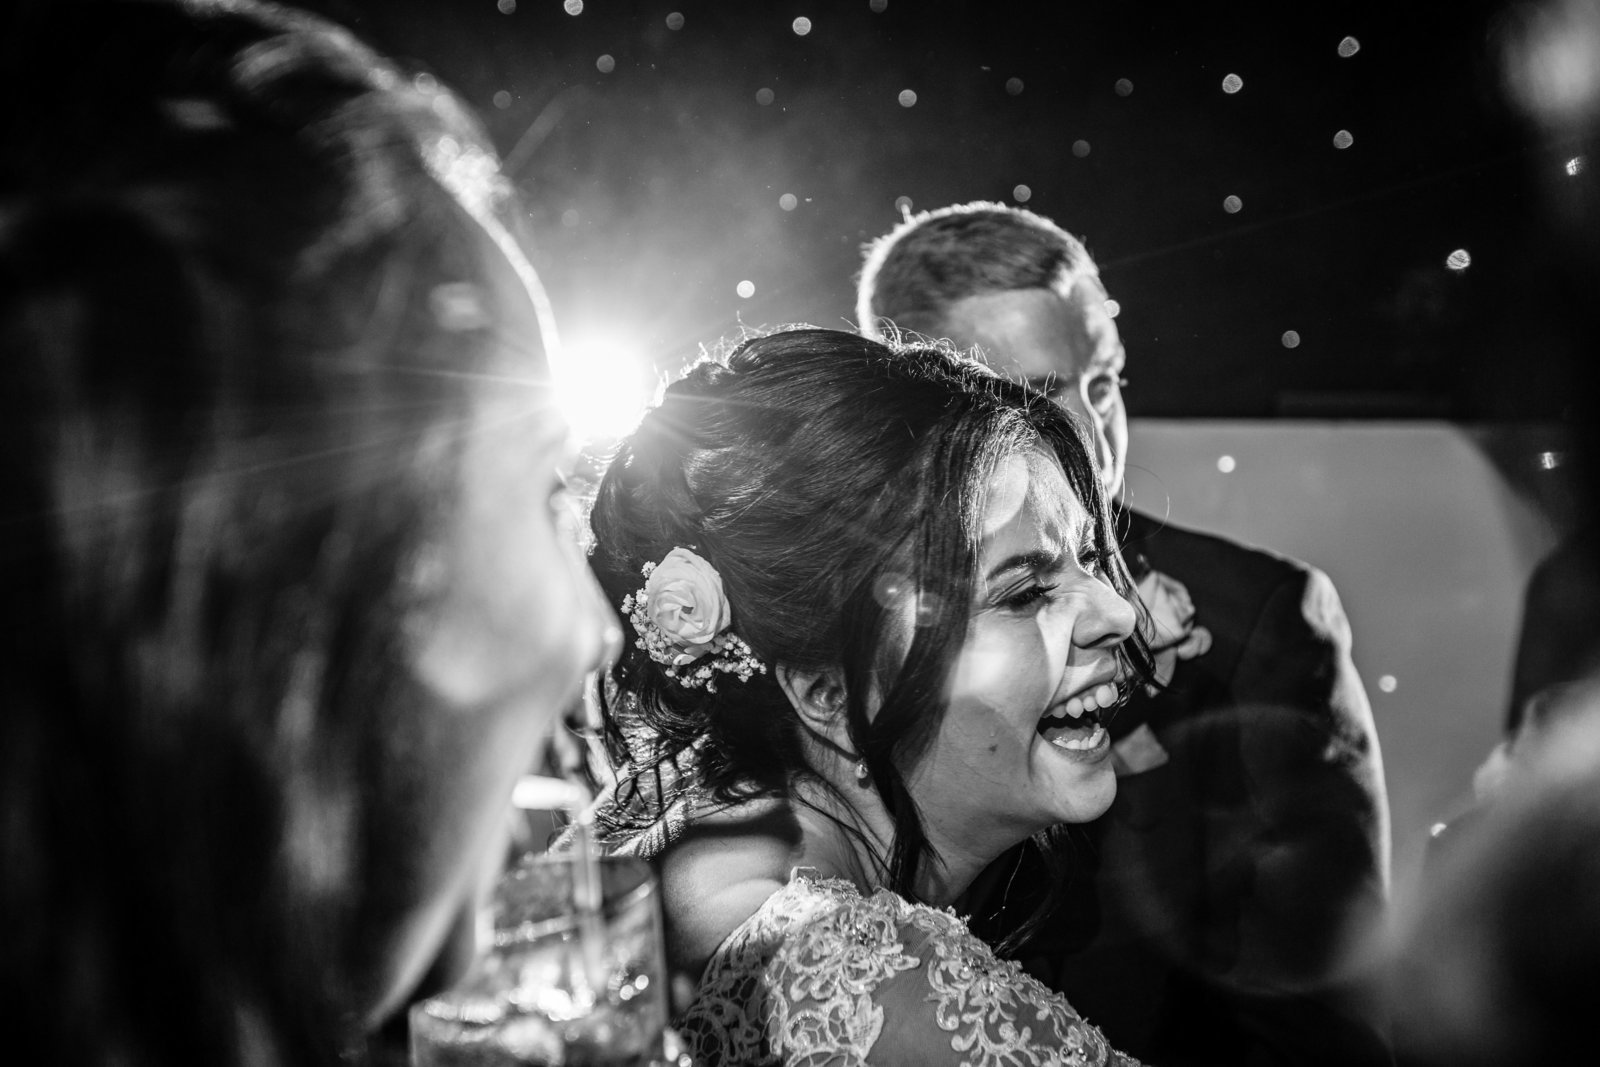 Bride cries happy tears on dancefloor after first dance at a Norfolk wedding.